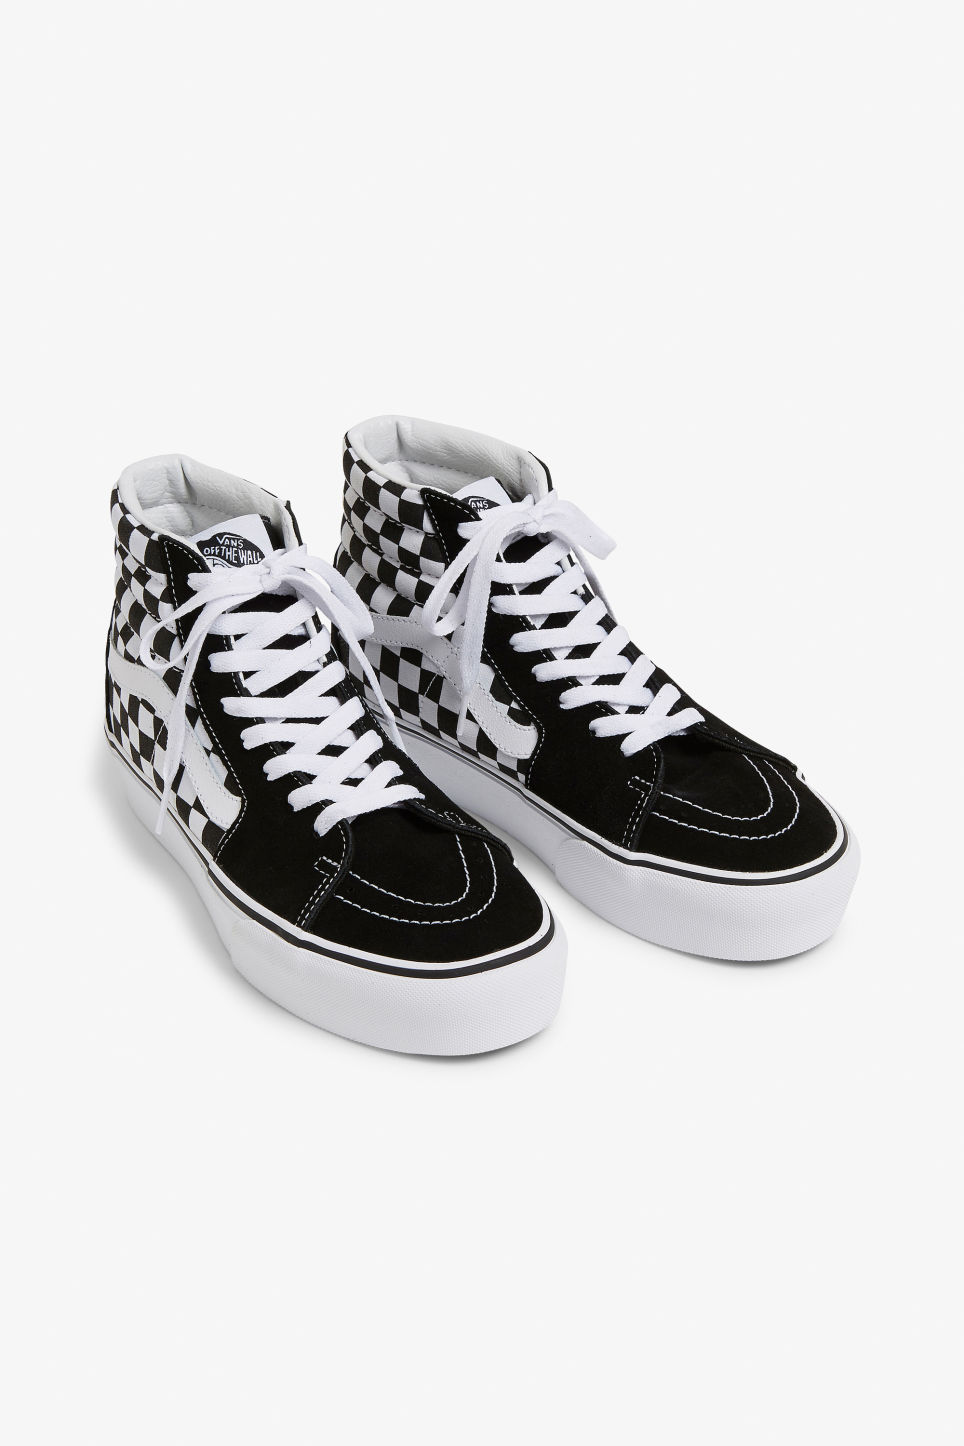 5f772689dd Vans SK8-HI platform 2.0 - Checkered - Shoes - Monki